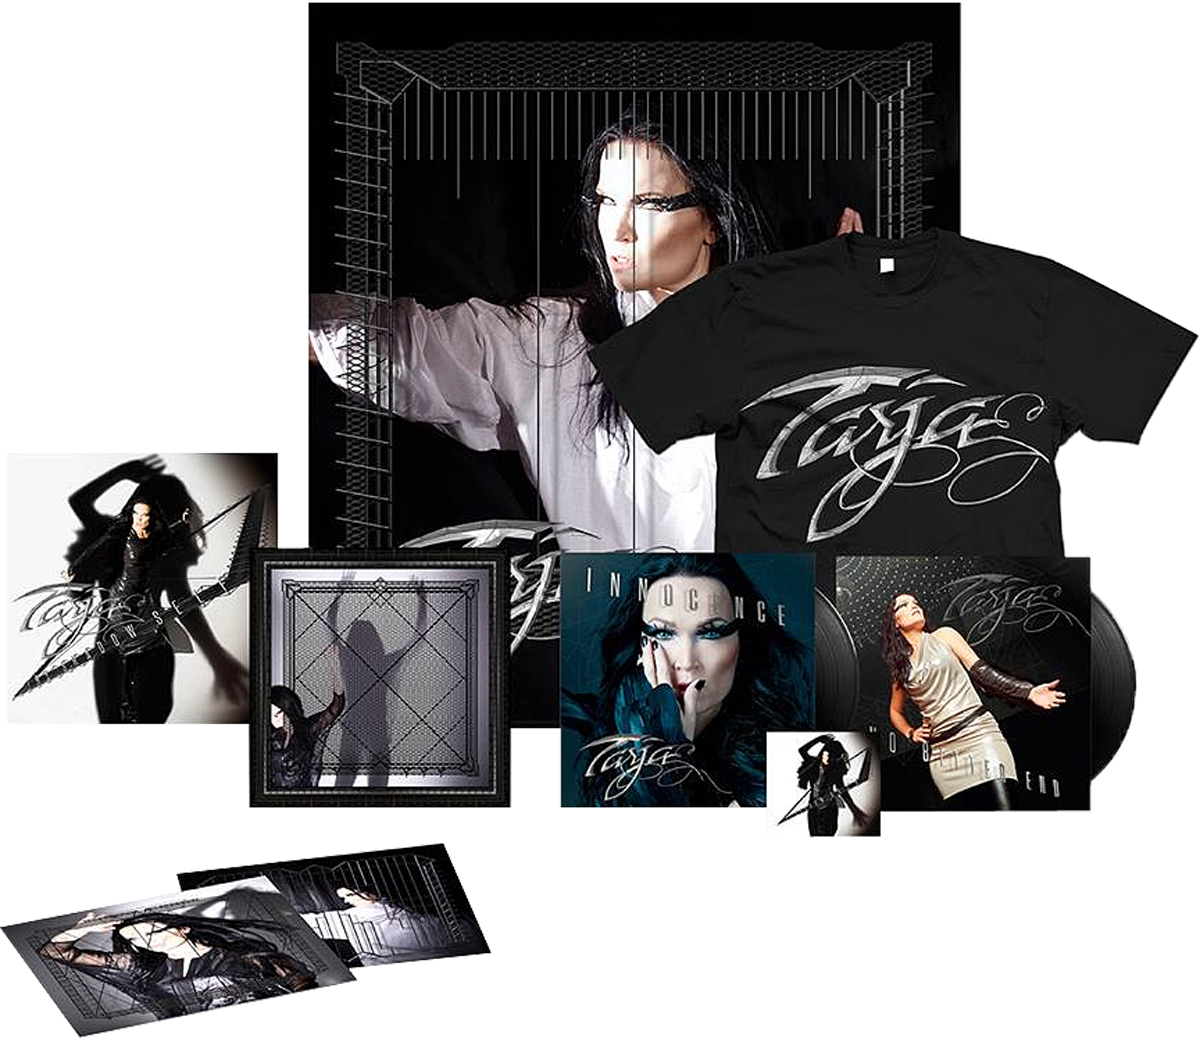 Тарья Турунен Tarja. The Shadow Self (3 CD + DVD + 2 LP) erotic fantasies in uniform 2 cd dvd